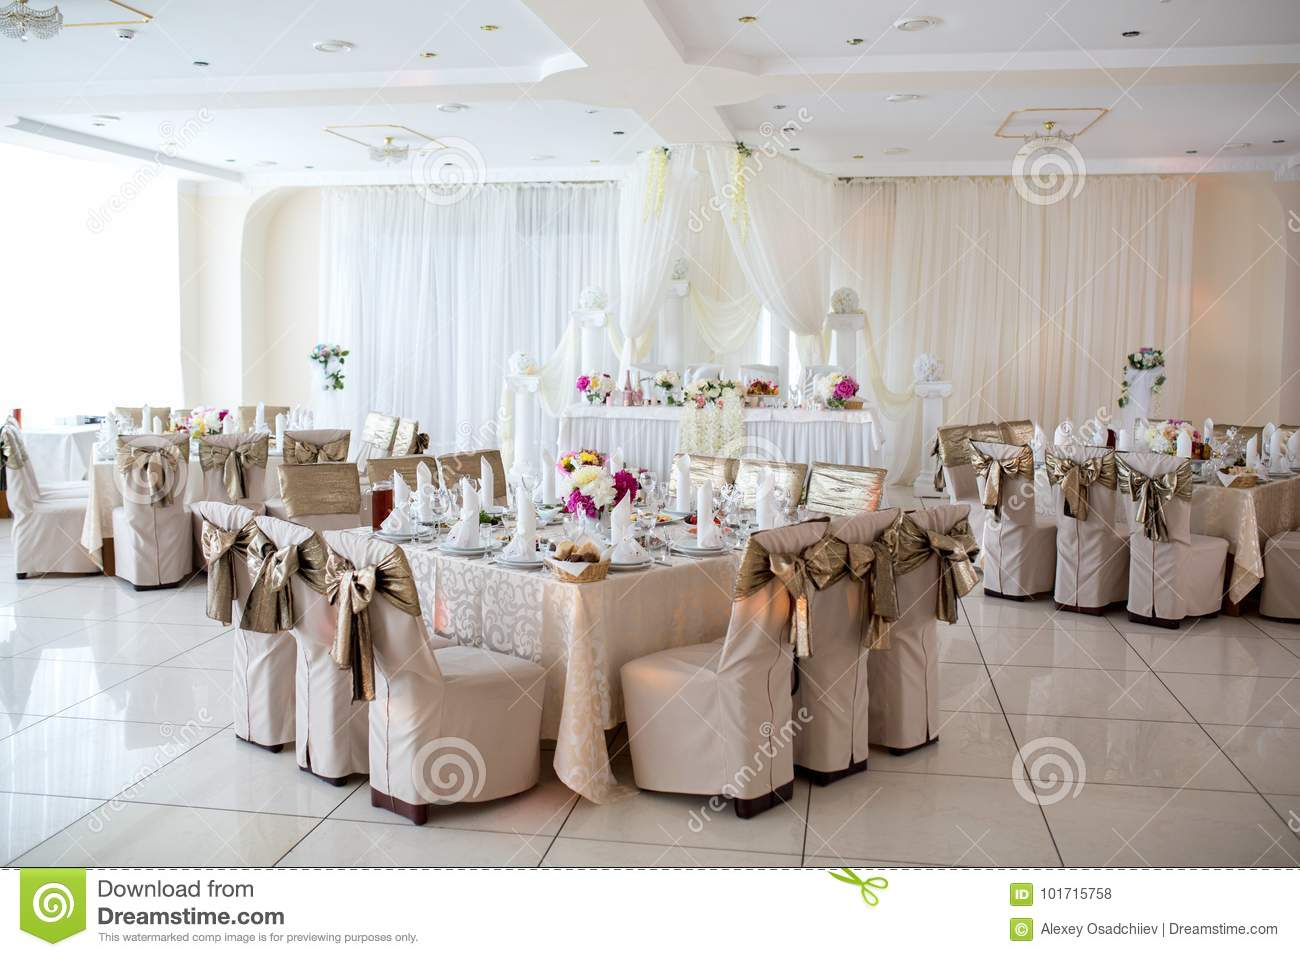 Draping Curtains Big Wedding Room Stock Photo Image Of Decoration Event 101715758